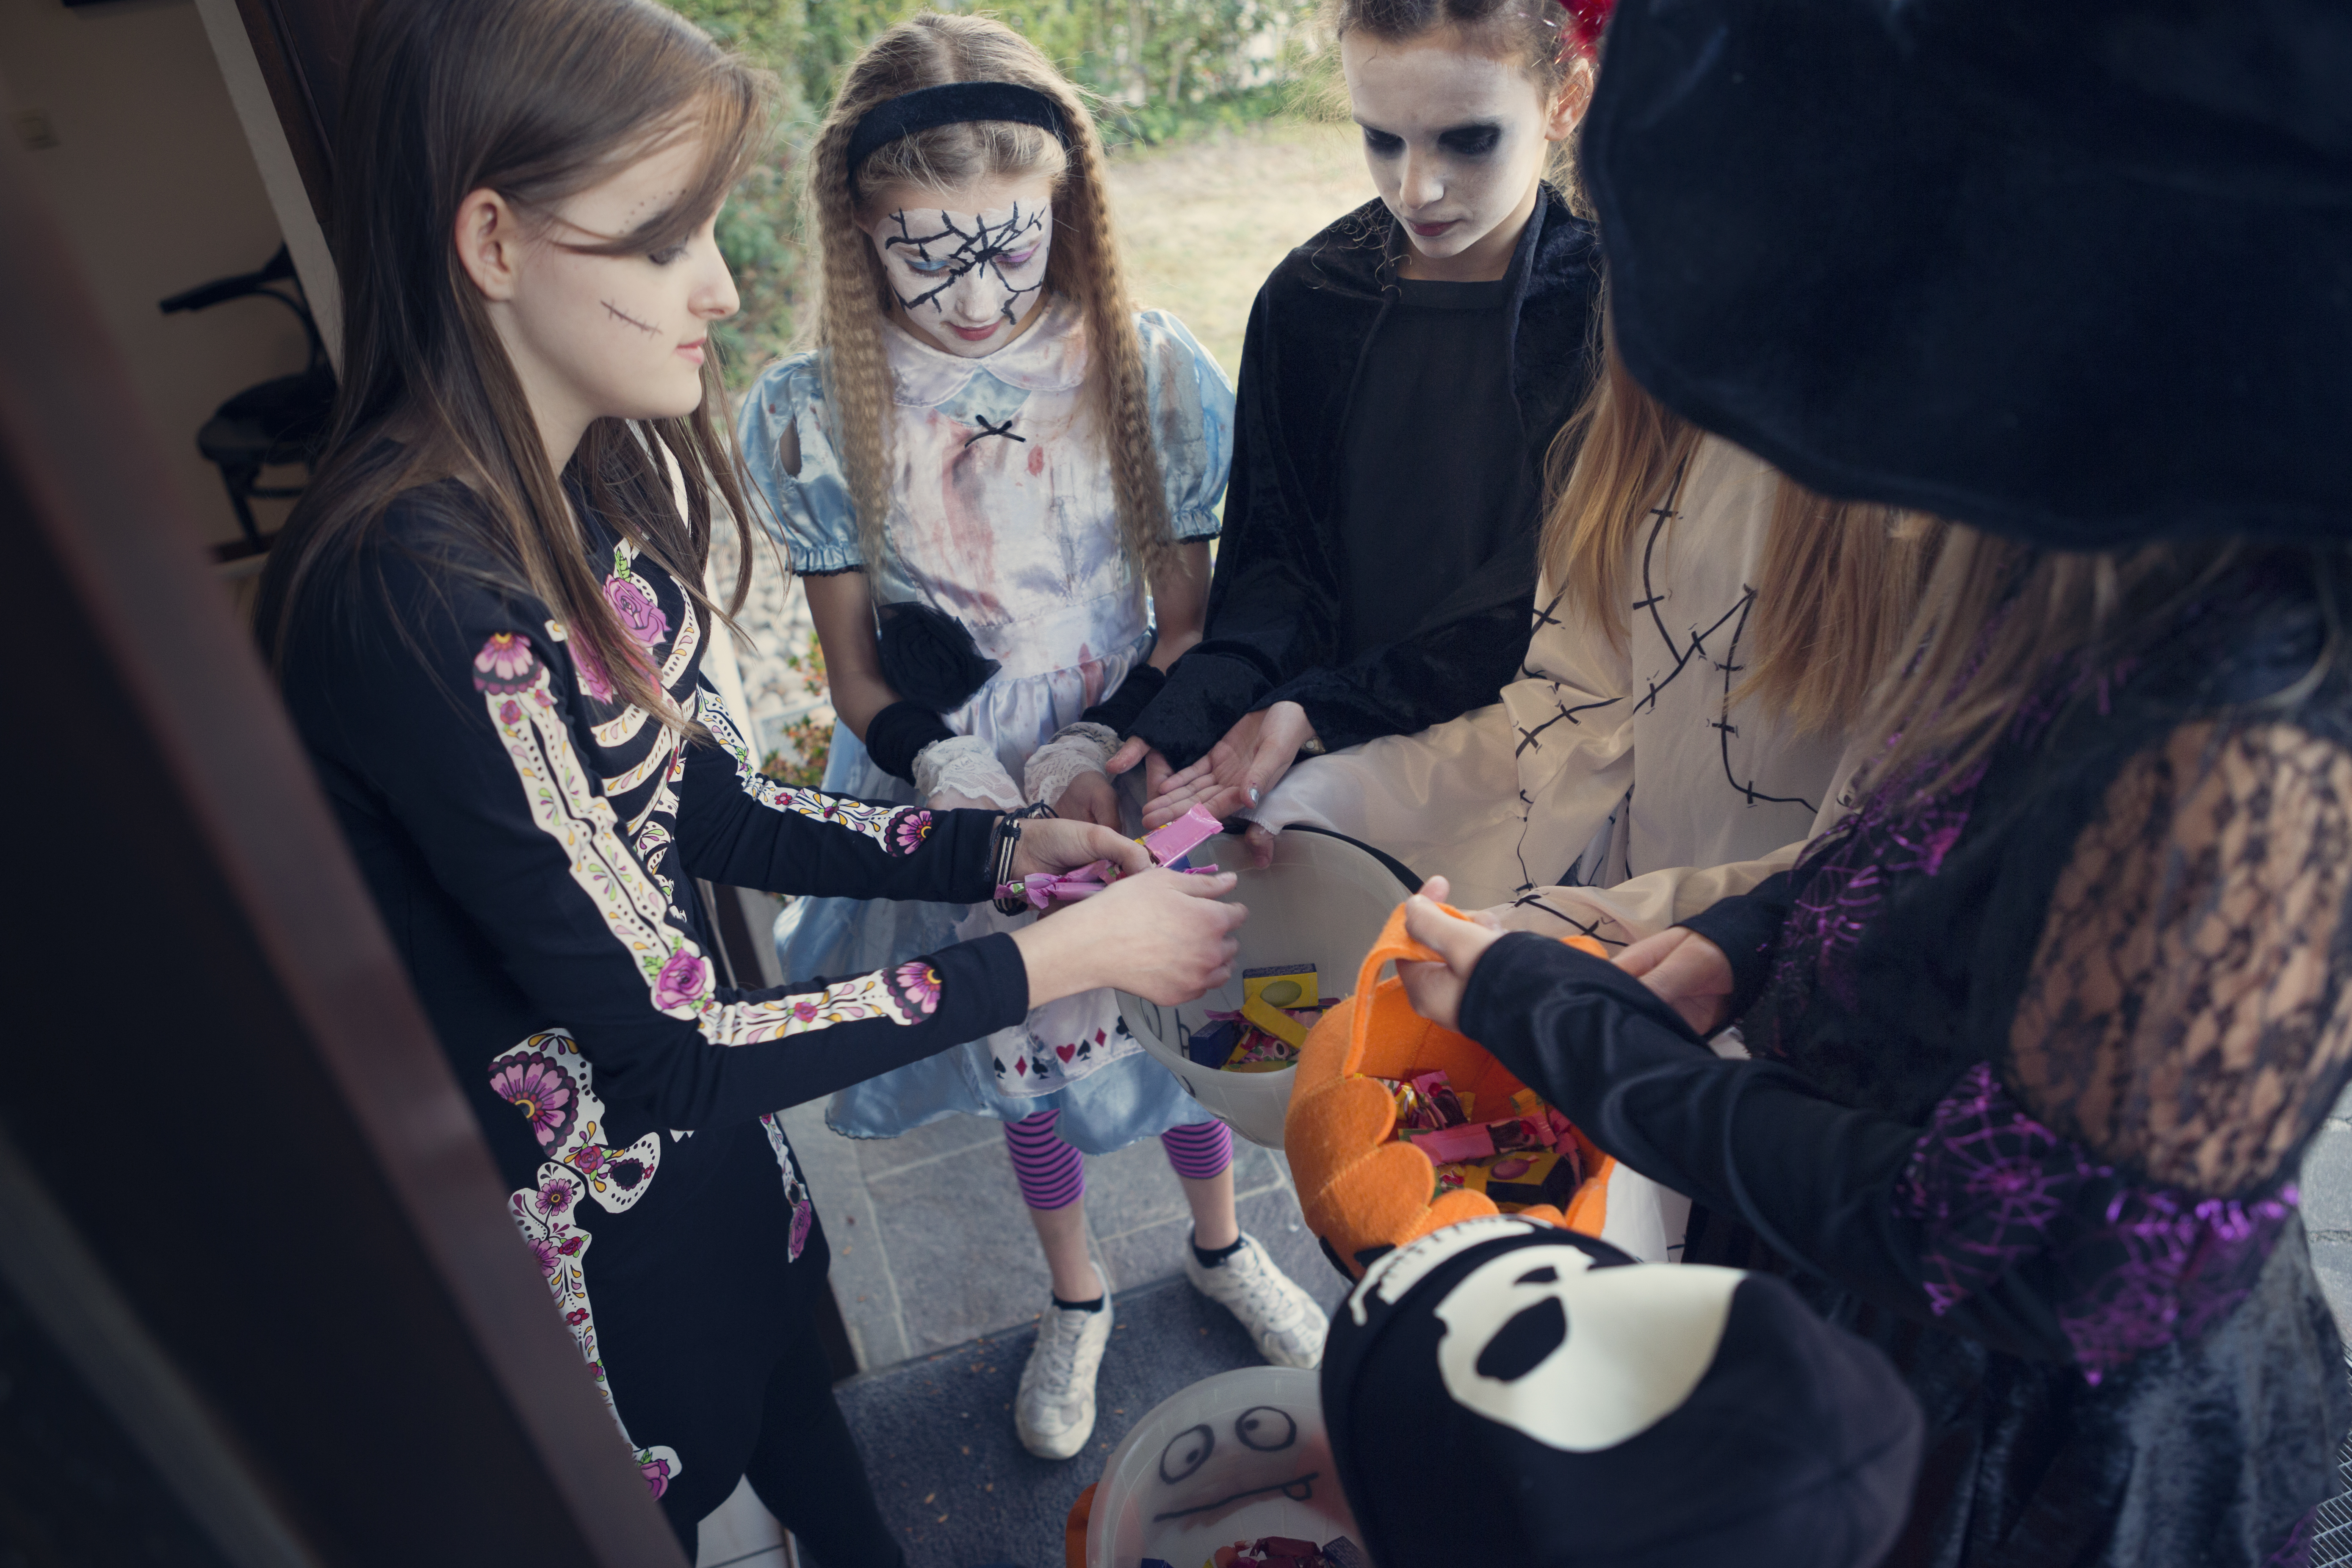 Group of girls trick or treating on Halloween